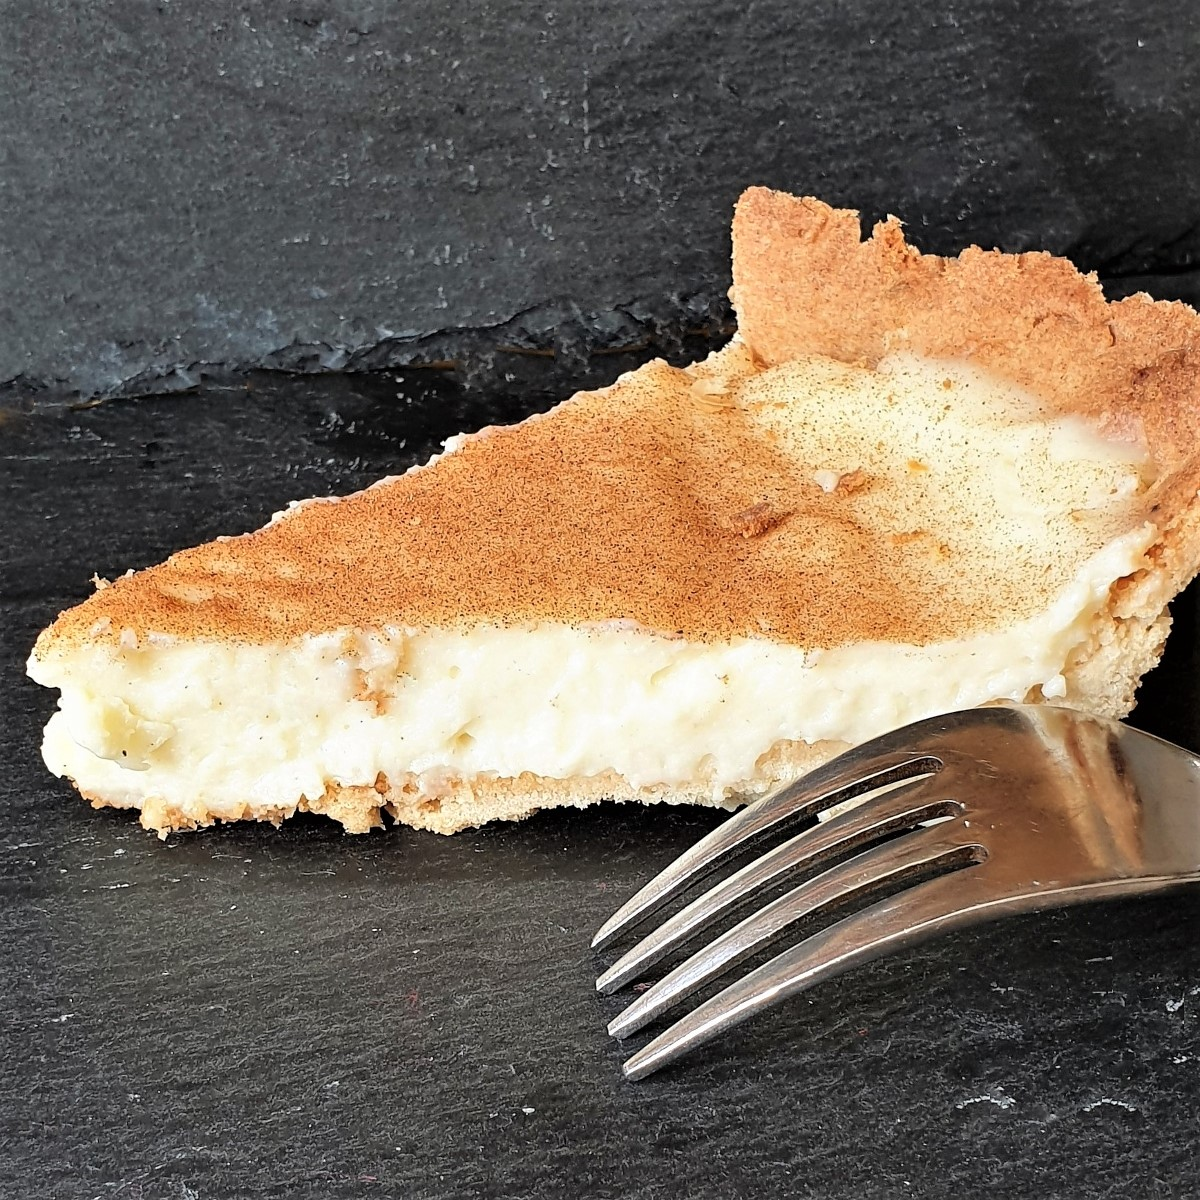 A slice of milk tart next to a fork, showing the set filling.